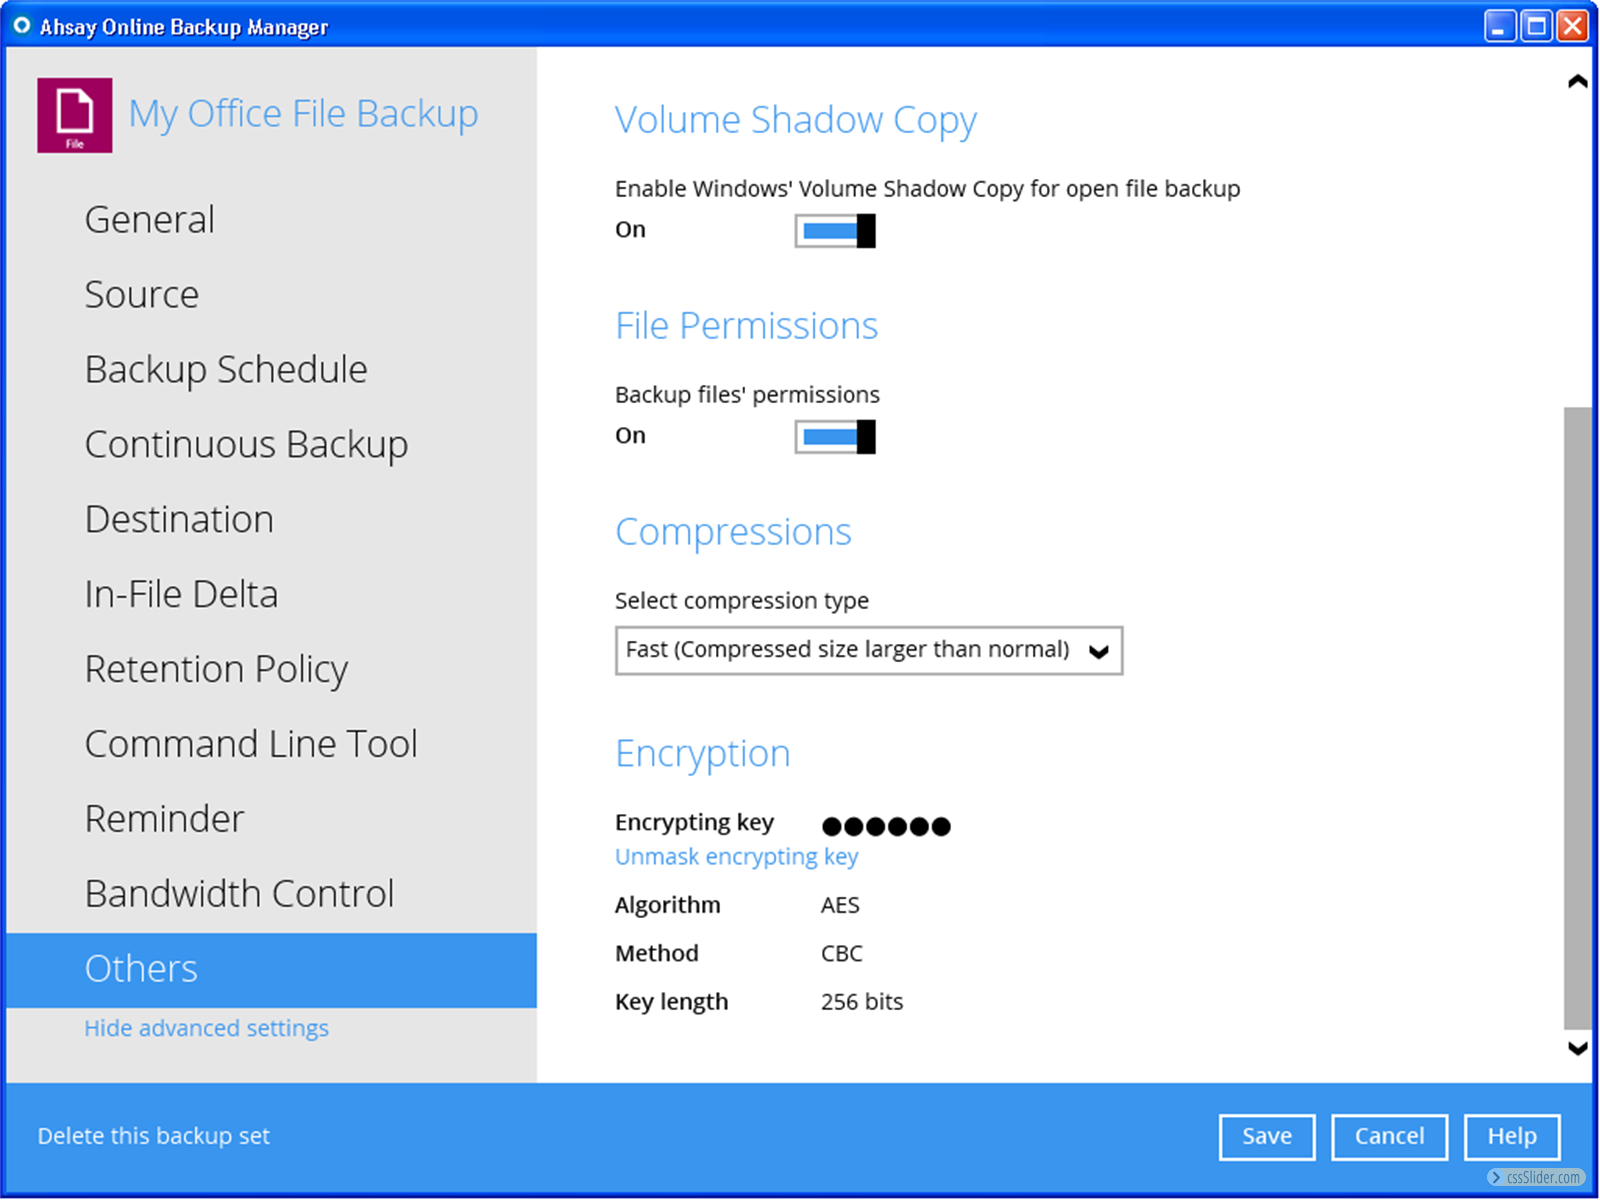 See the UI of Ahsay client backup agent - Ahsay Backup